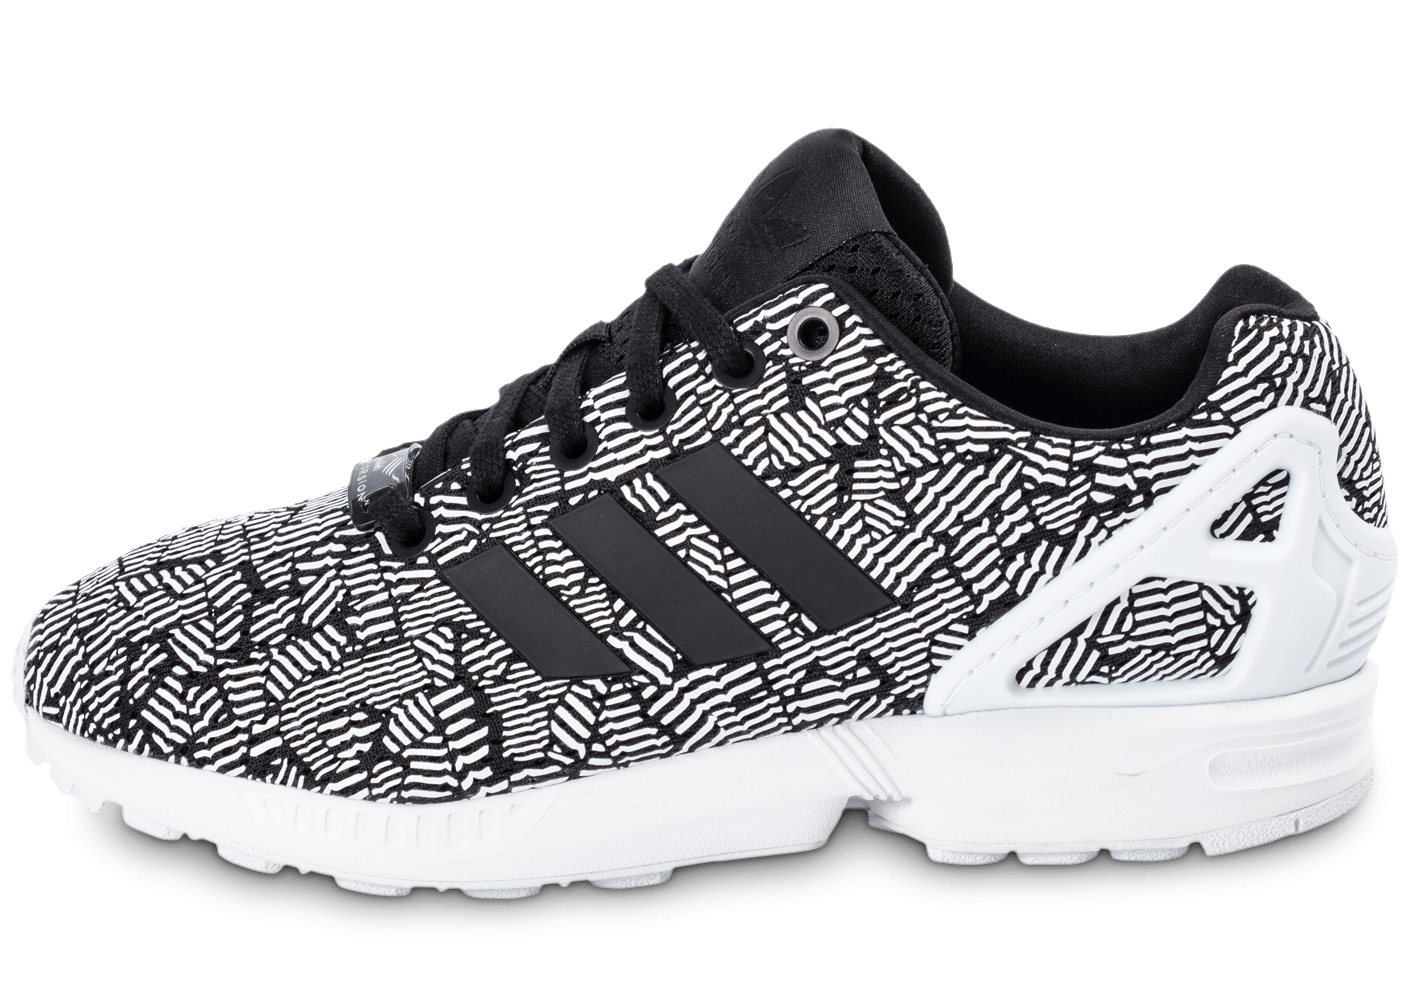 adidas zx flux print blanche et noire chaussures adidas chausport. Black Bedroom Furniture Sets. Home Design Ideas